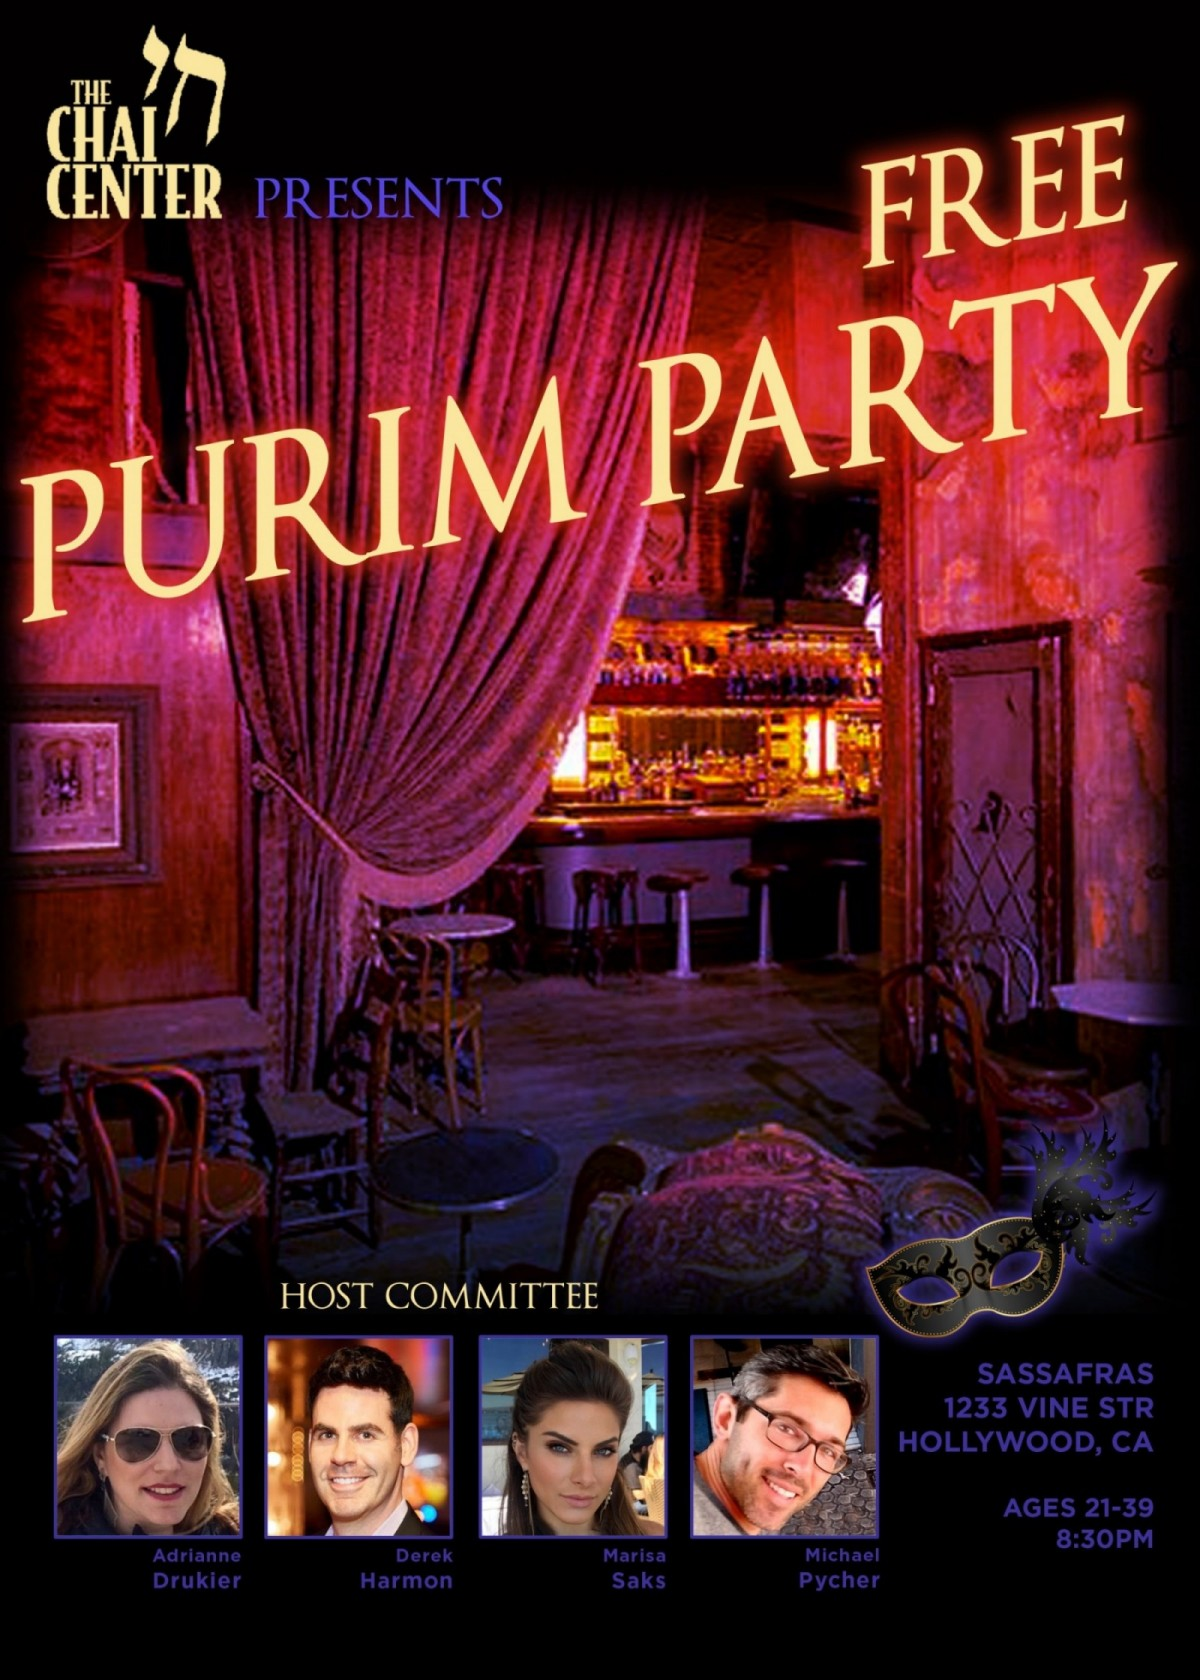 Free PURIM PARTY